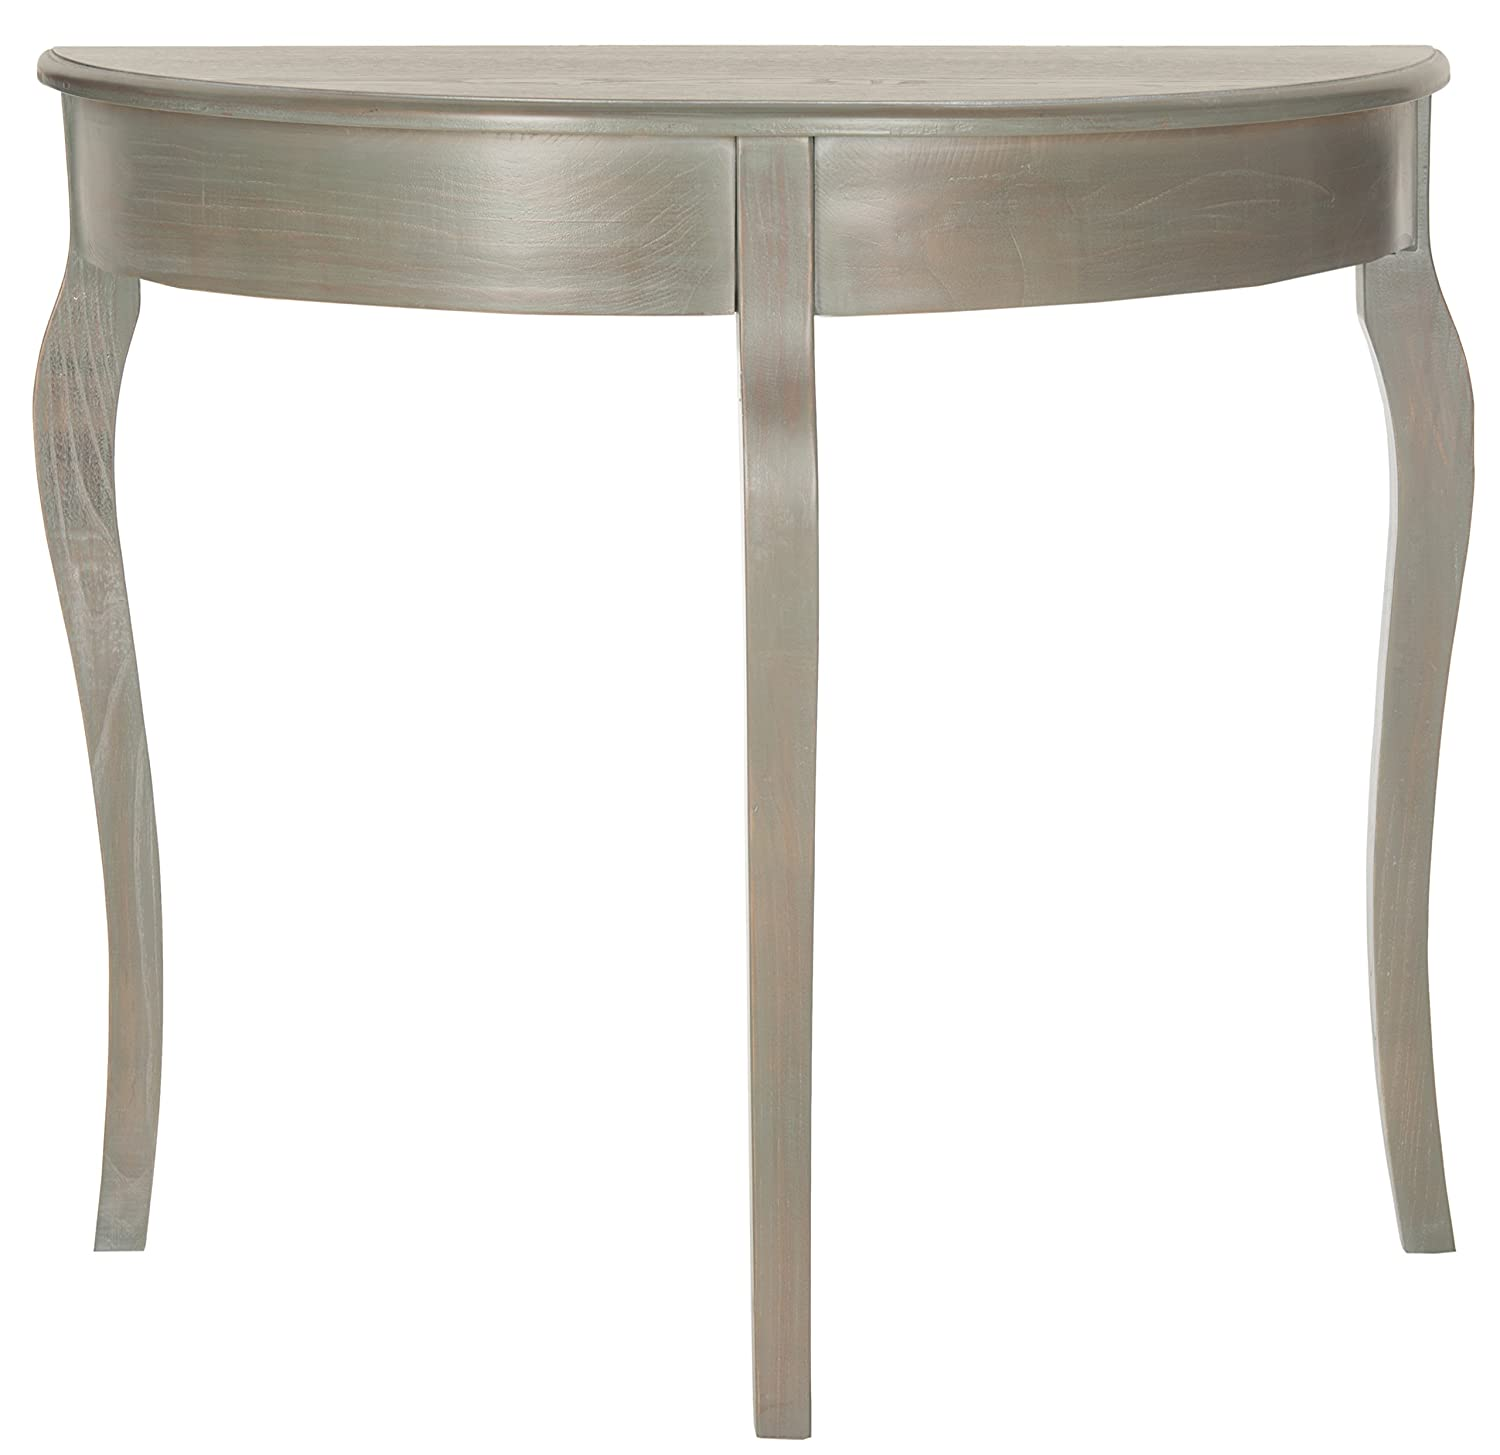 Safavieh American Homes Collection Sema Console Table, French Grey